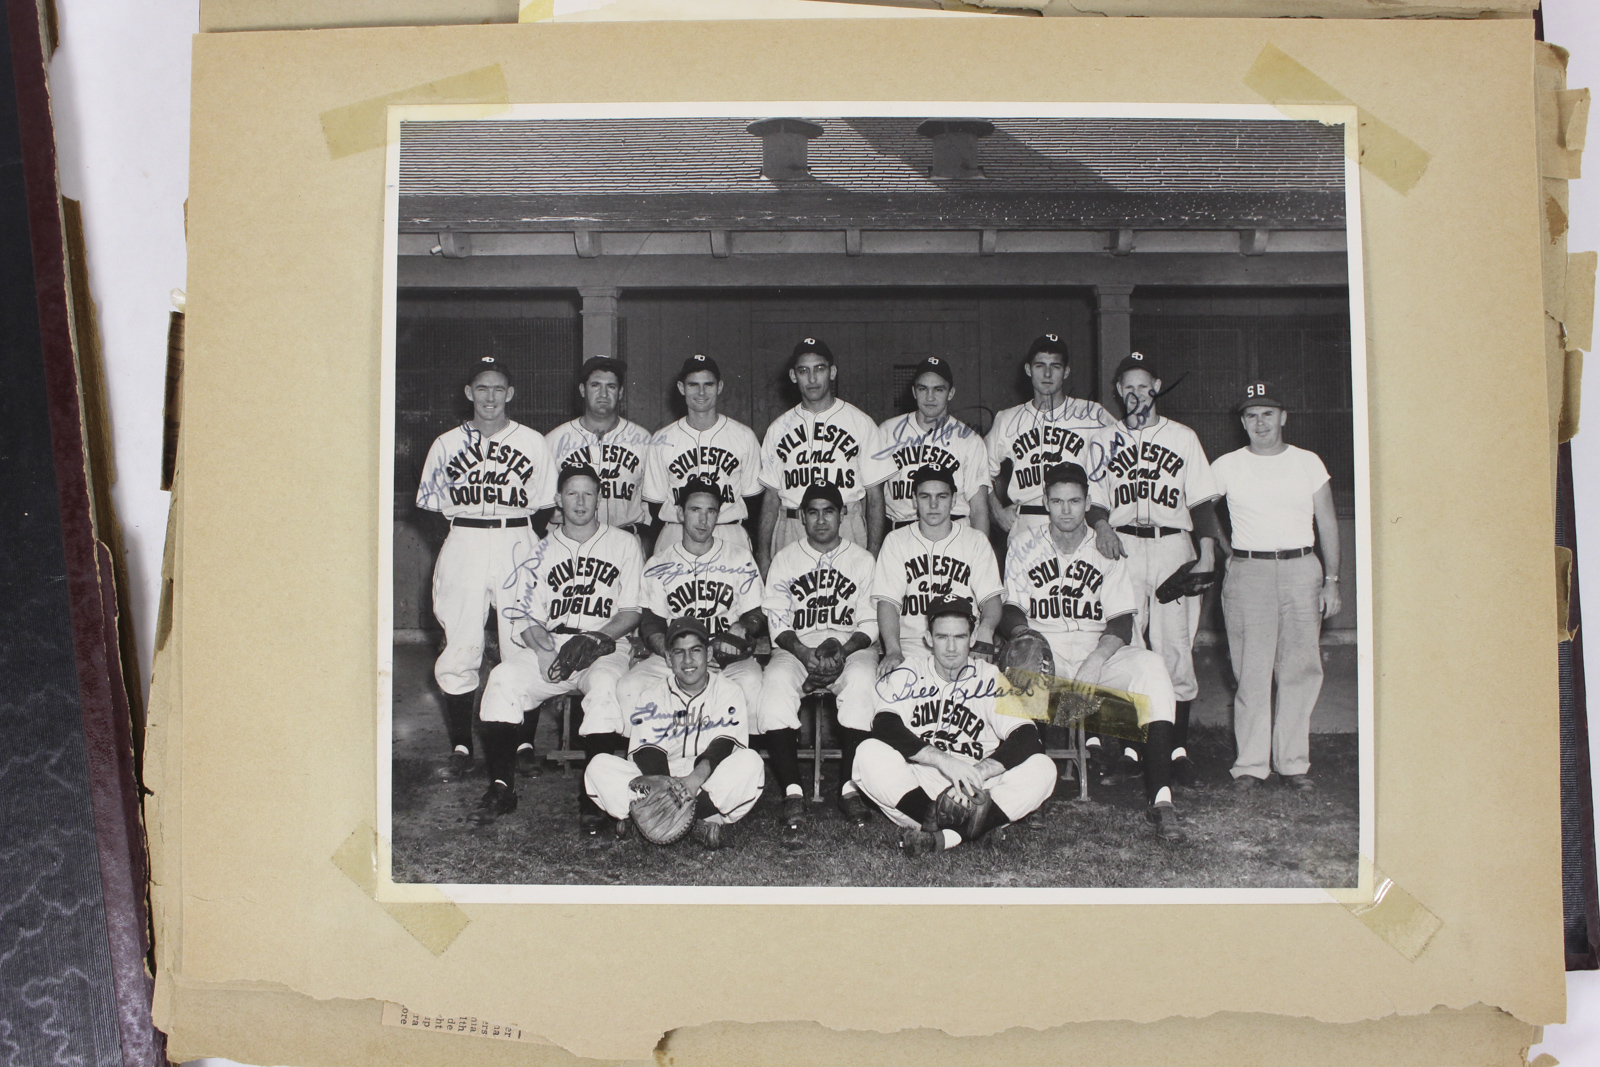 How to scrapbook newspaper clippings - There Is Also Another Team Photo Of The Santa Barbara Dodgers Probably From 1948 And Several Newspaper Clippings